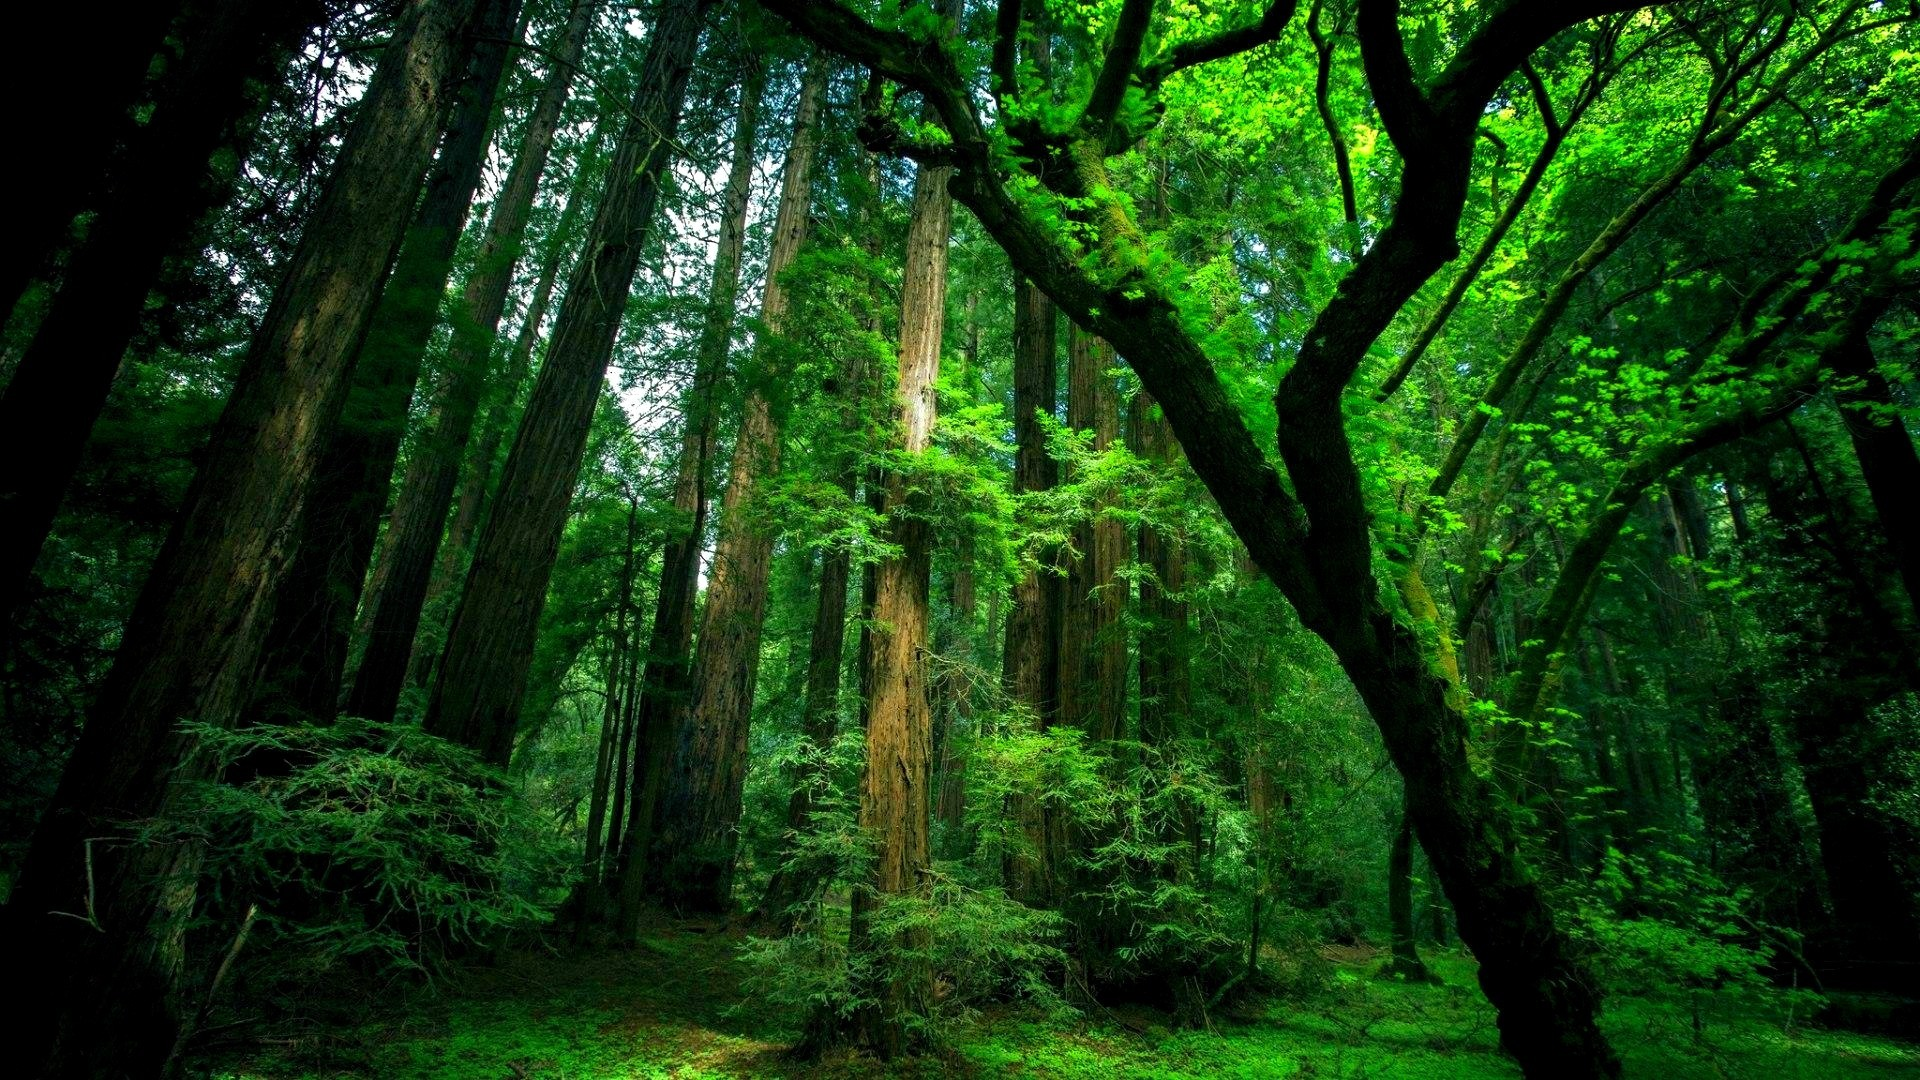 Wallpaperspoints Natural green forest wallpaper Full HD 1920x1080